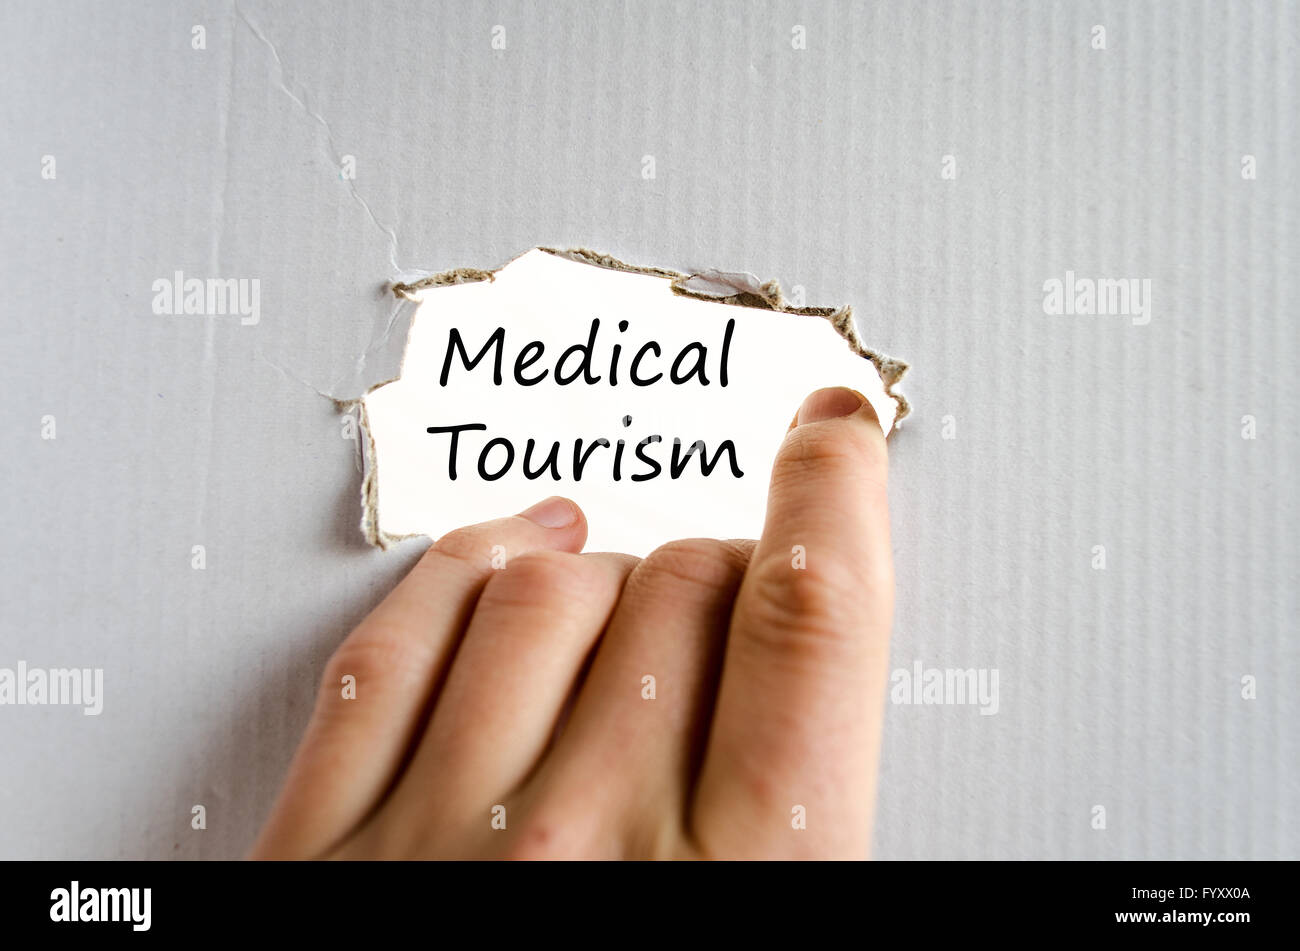 Le tourisme médical concept texte Photo Stock